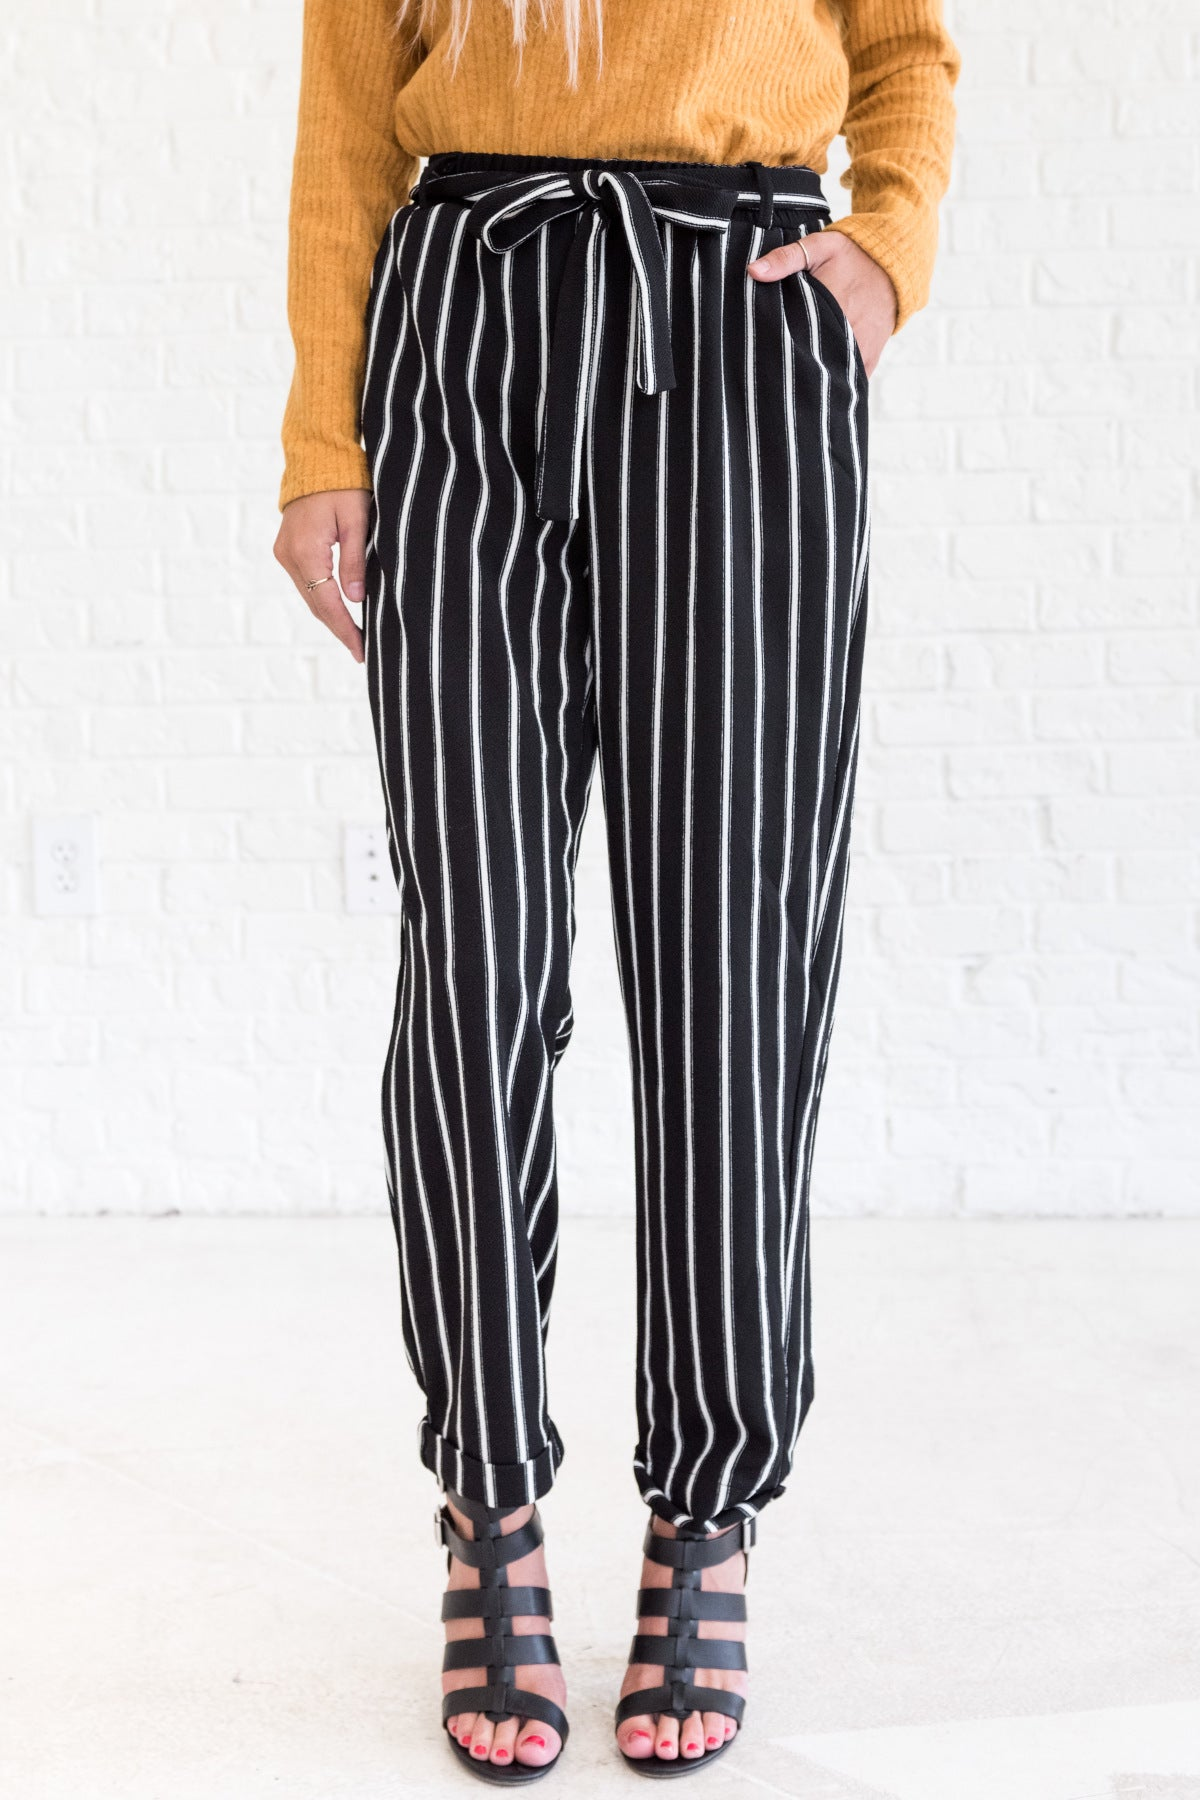 Black White Striped Flare Palazzo Pants with Tie Front and Pockets